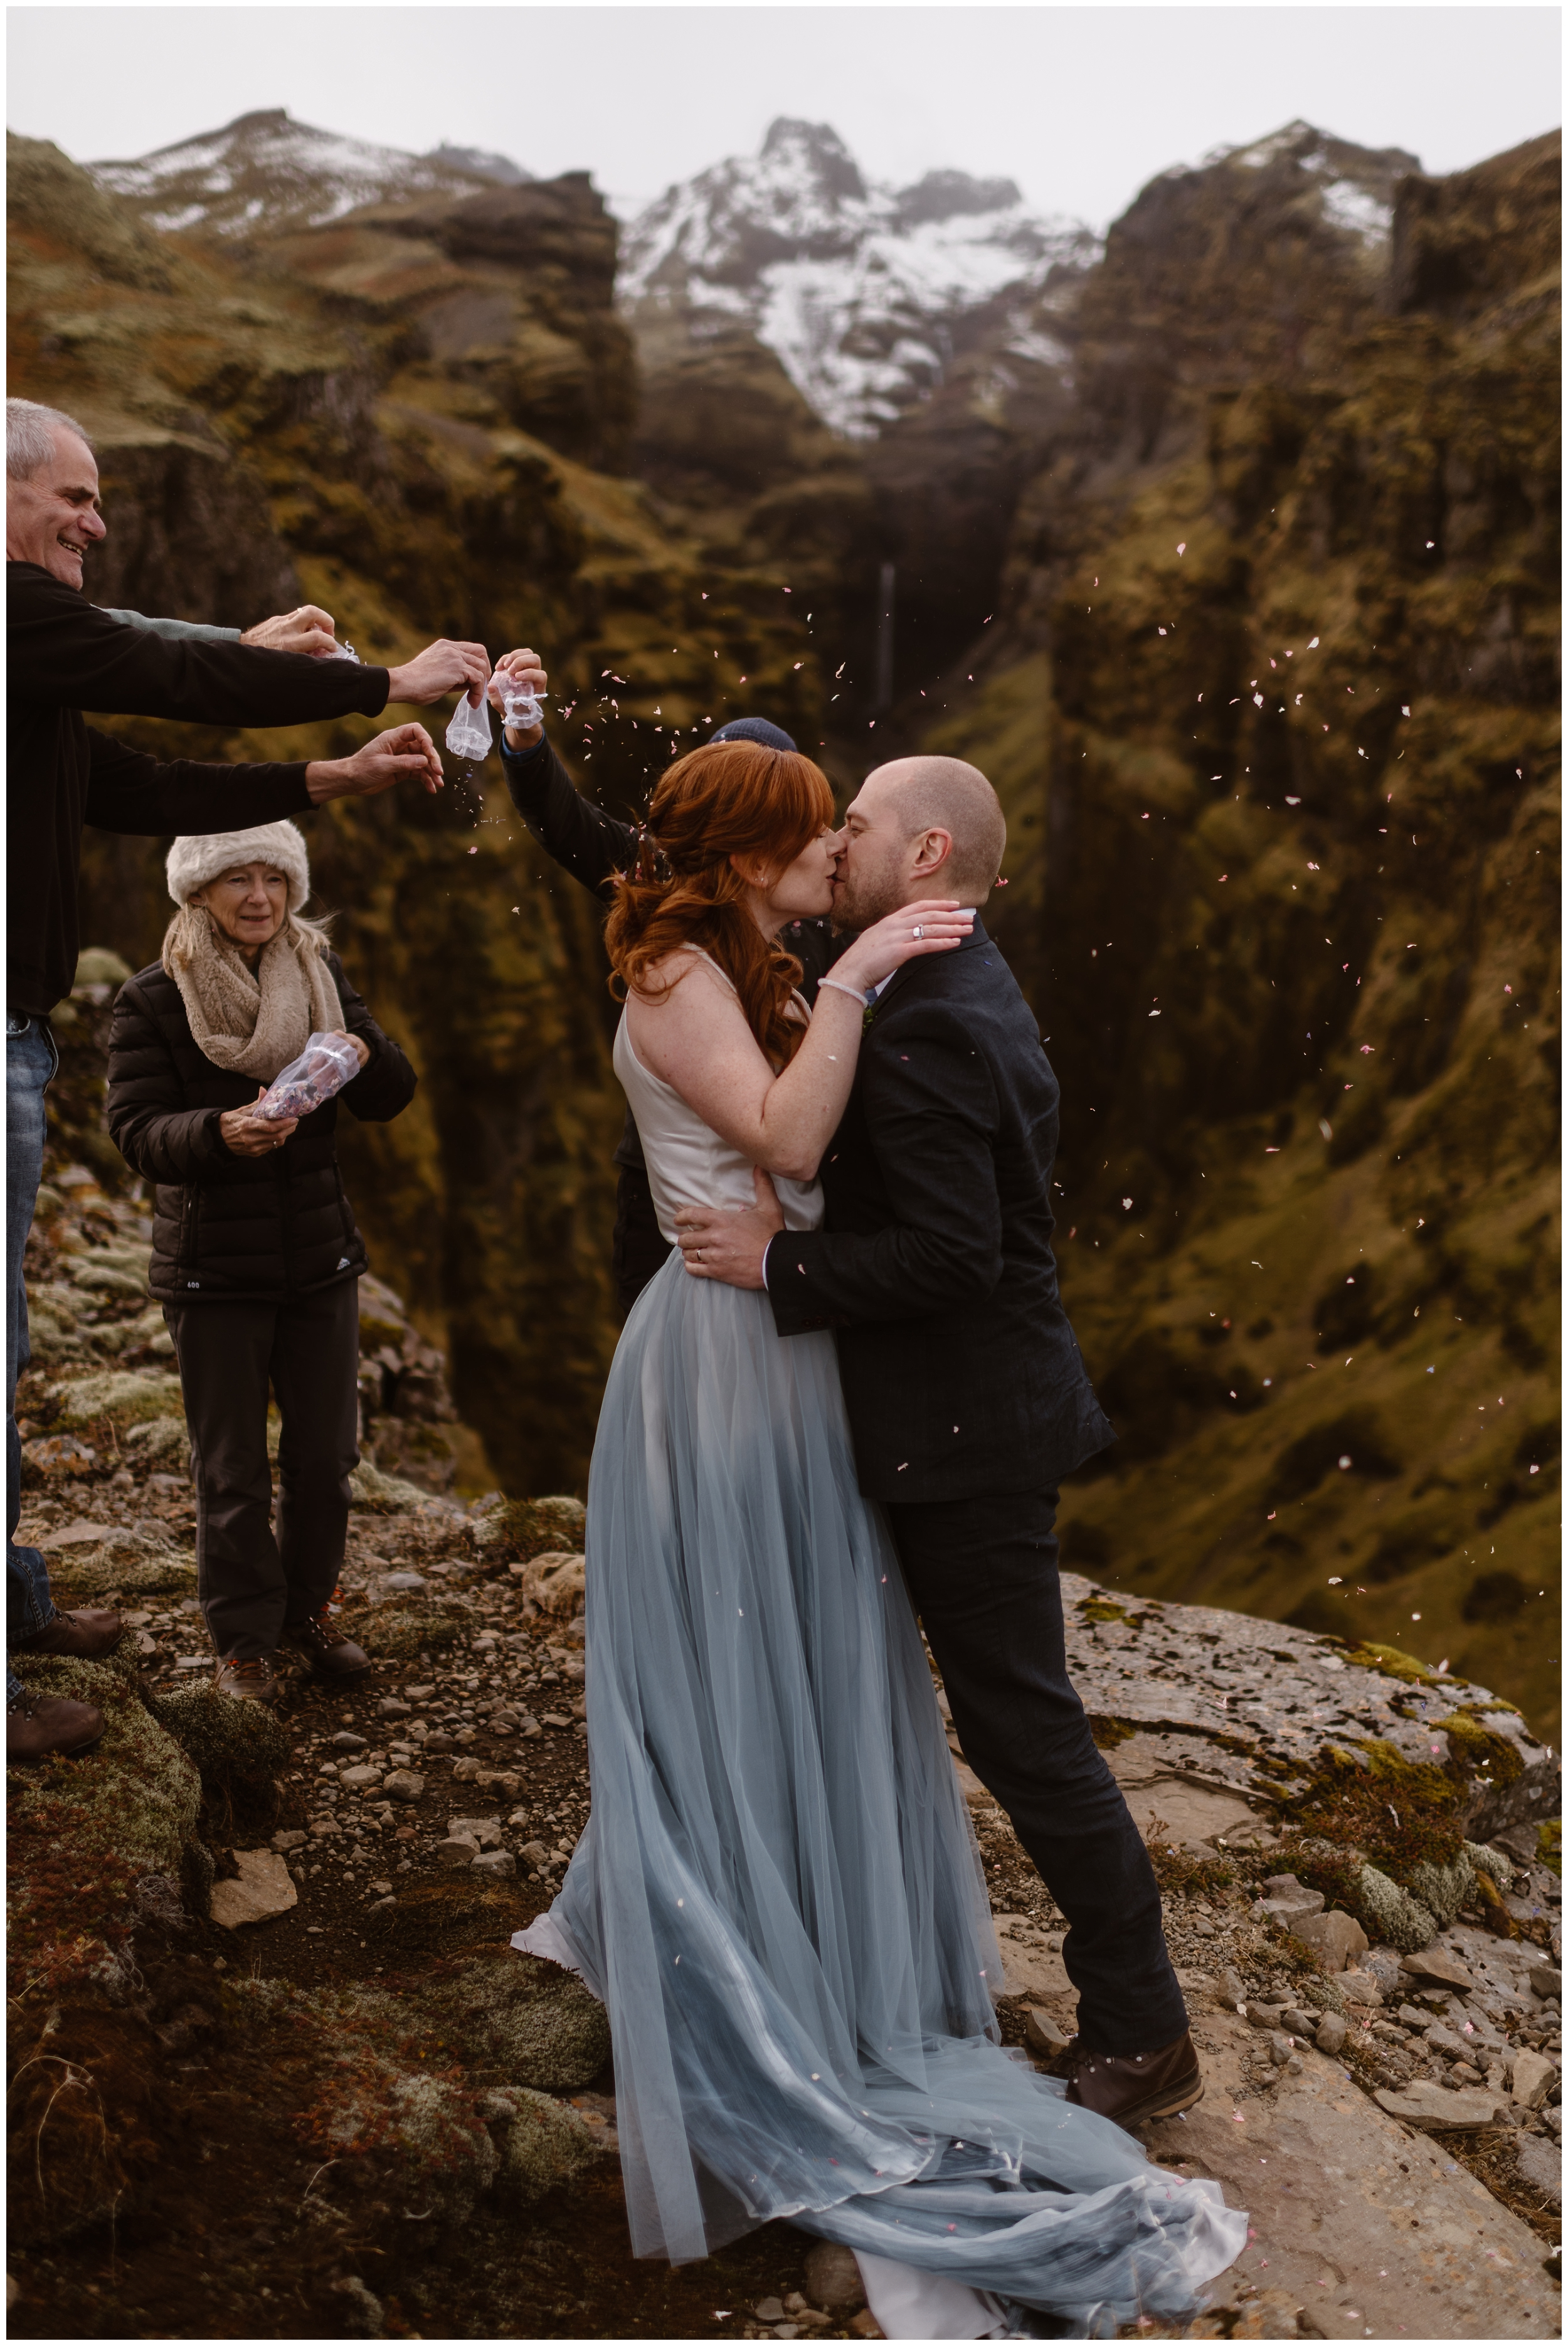 A bride and groom kiss as they stand on top of a lush, green mountainside. The bride, in a striking light blue gown, leans into her new husband as friends and family members empty flower petals from small bags all around them.